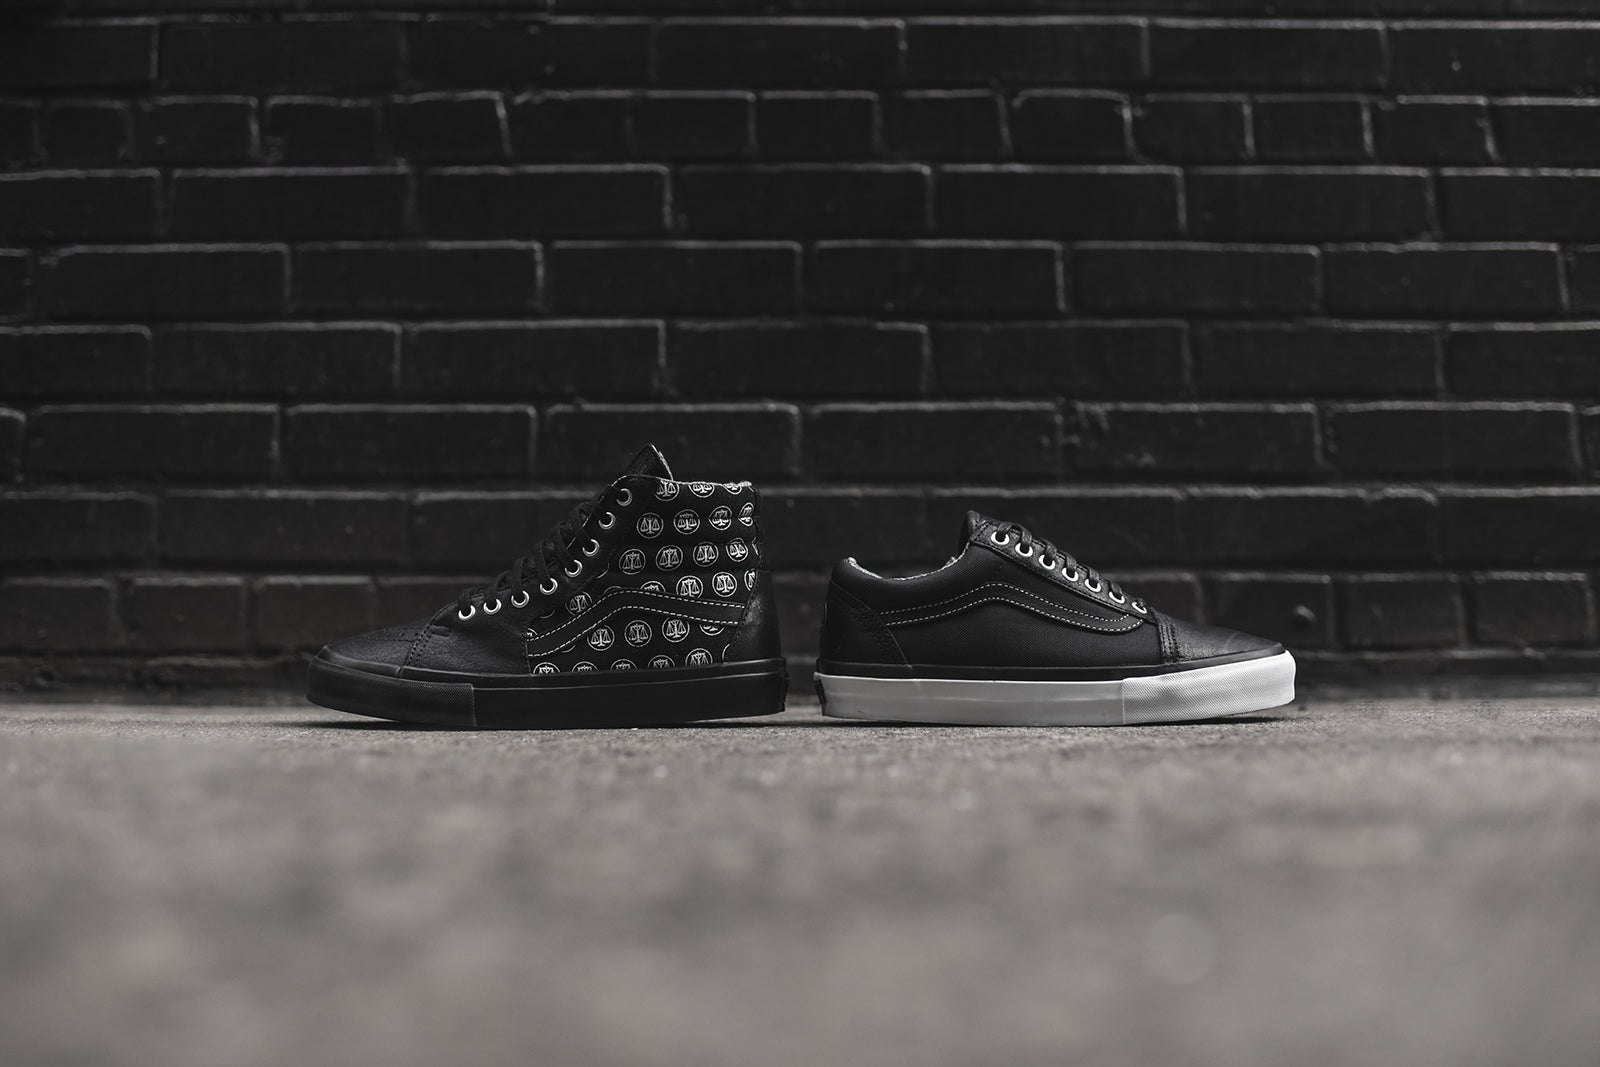 3a1f49f6ed Vans Vault x Highs And Lows Pack. September 17